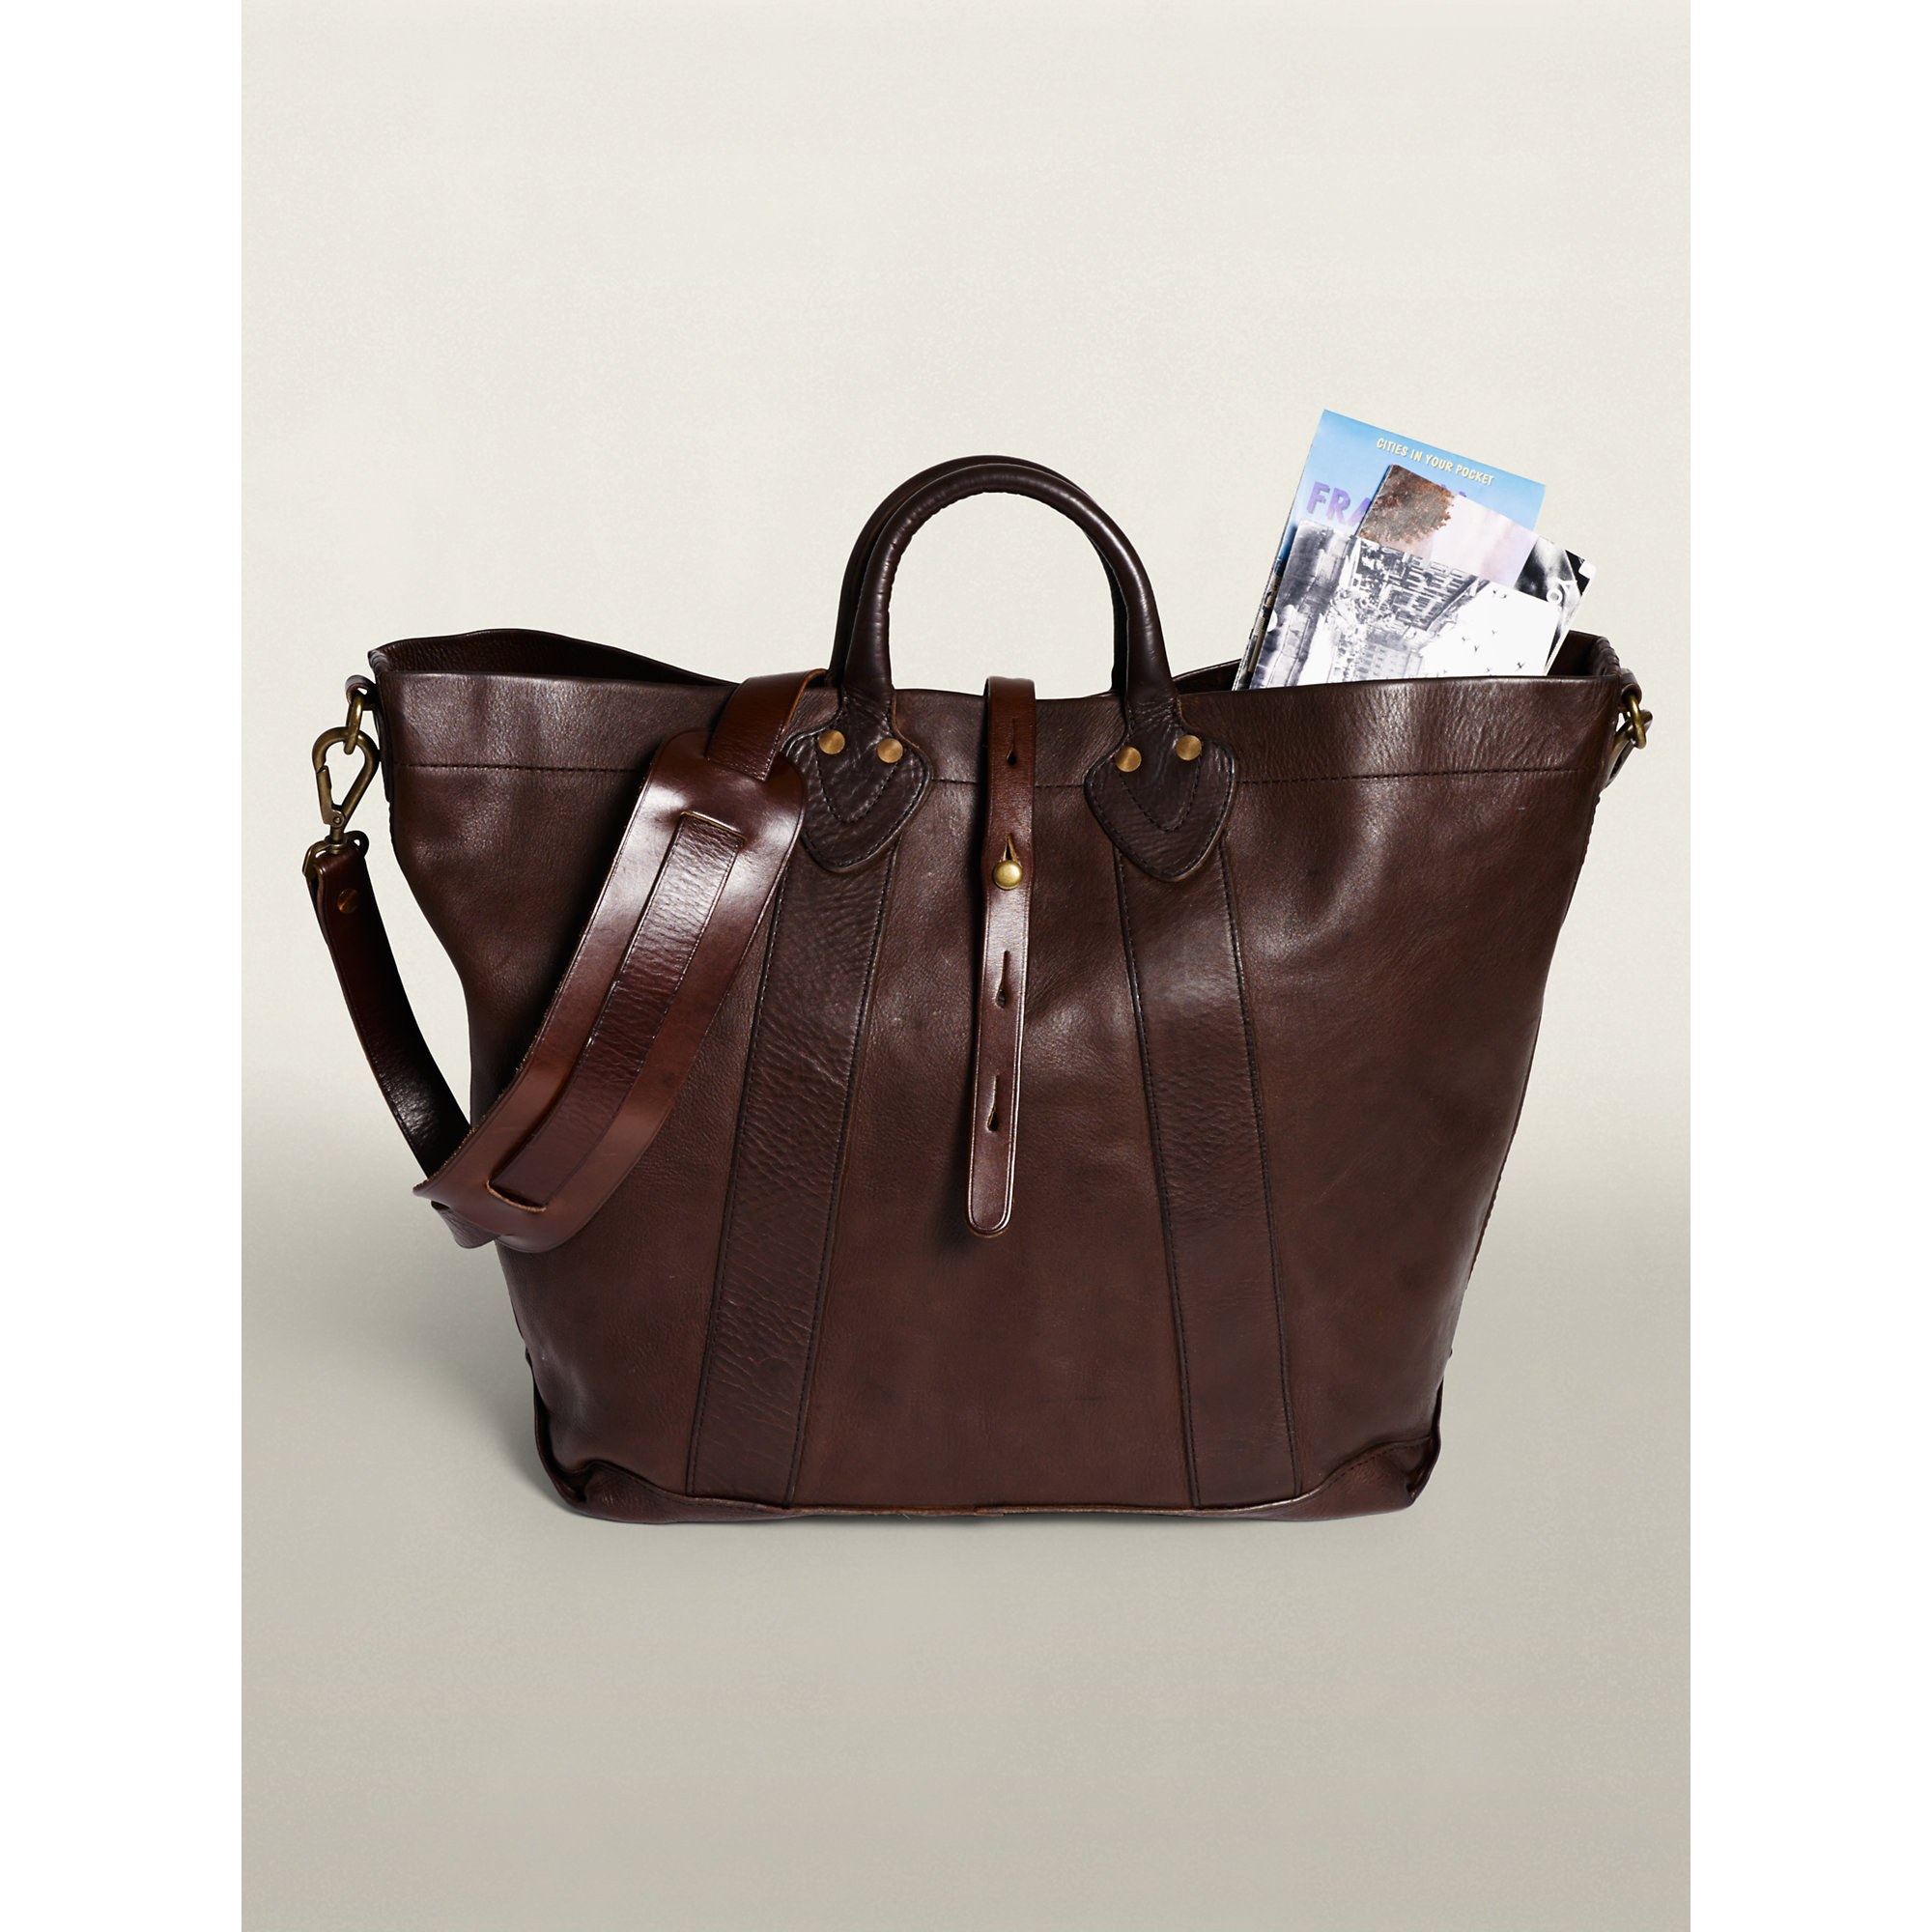 6a1c3850c0 Lyst - RRL Vintage Leather Tote in Brown for Men